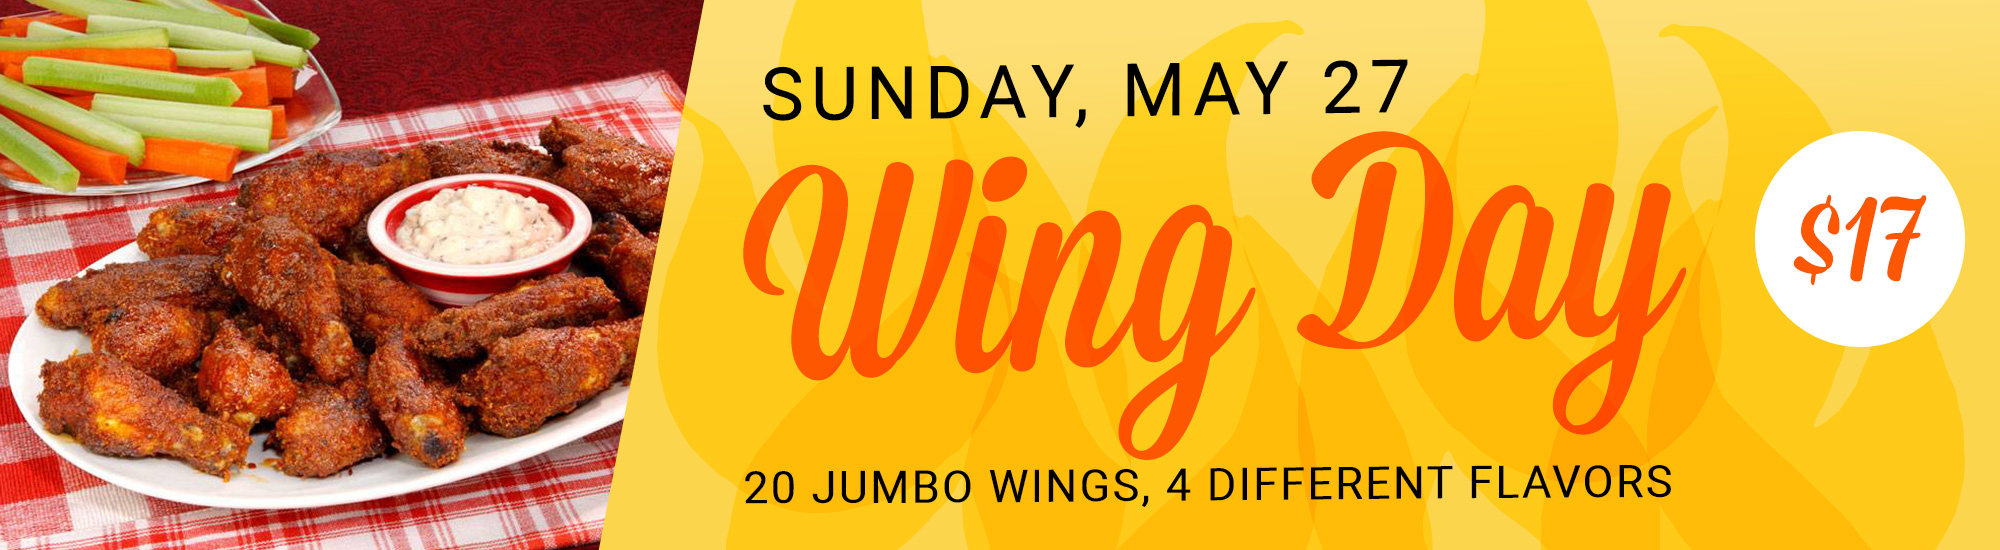 Wing Day Special - Sunday, May 27